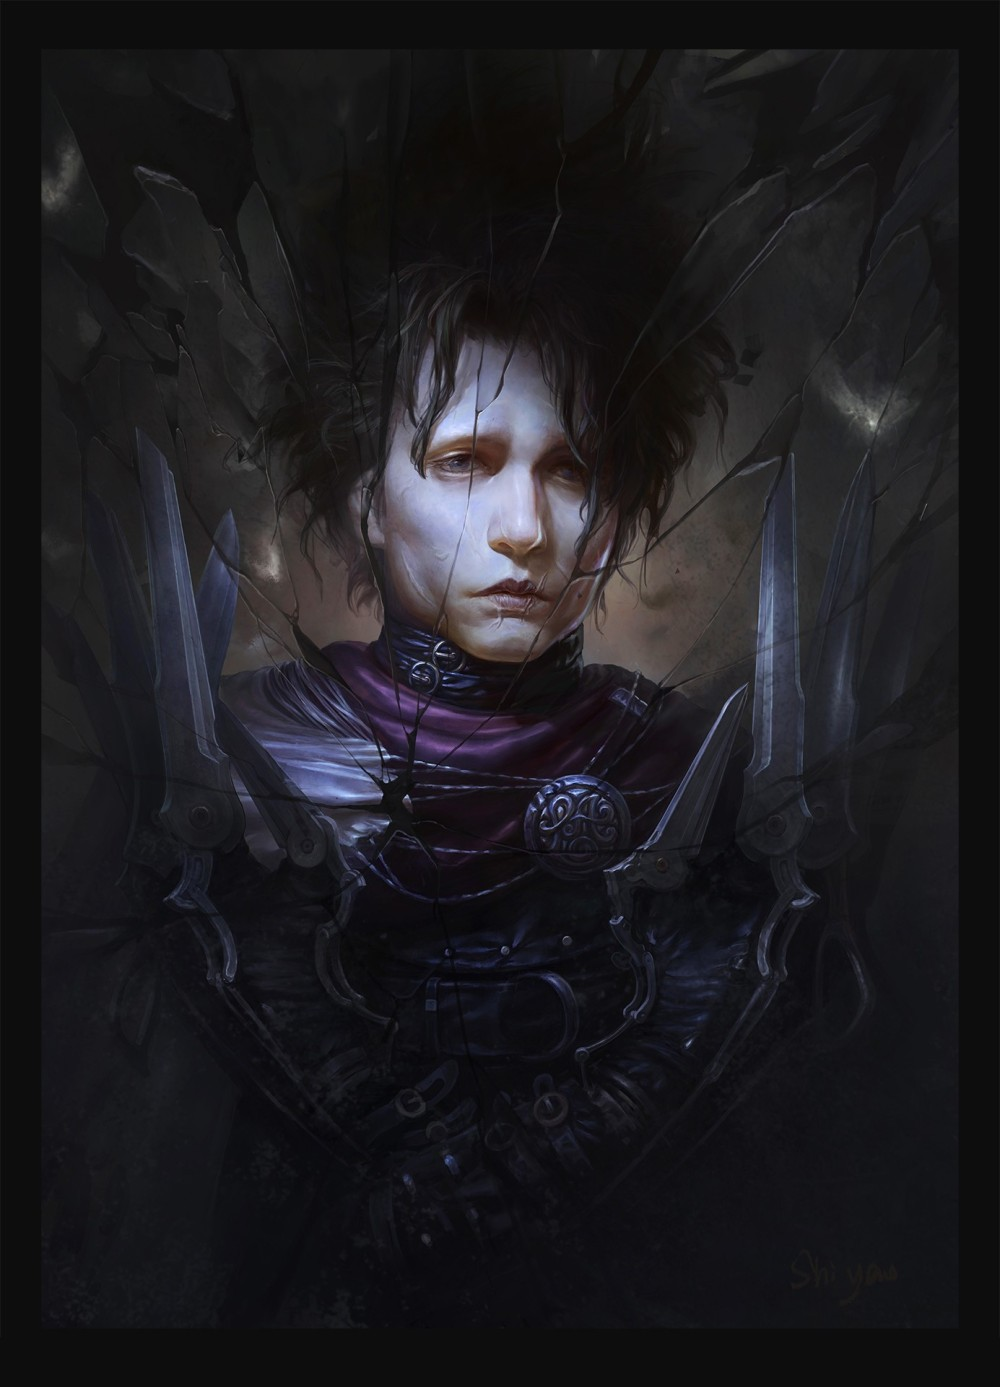 illustration-sadness-Edward-Scissorhands-darkness-screenshot-fictional-character-10054-wallhere.com